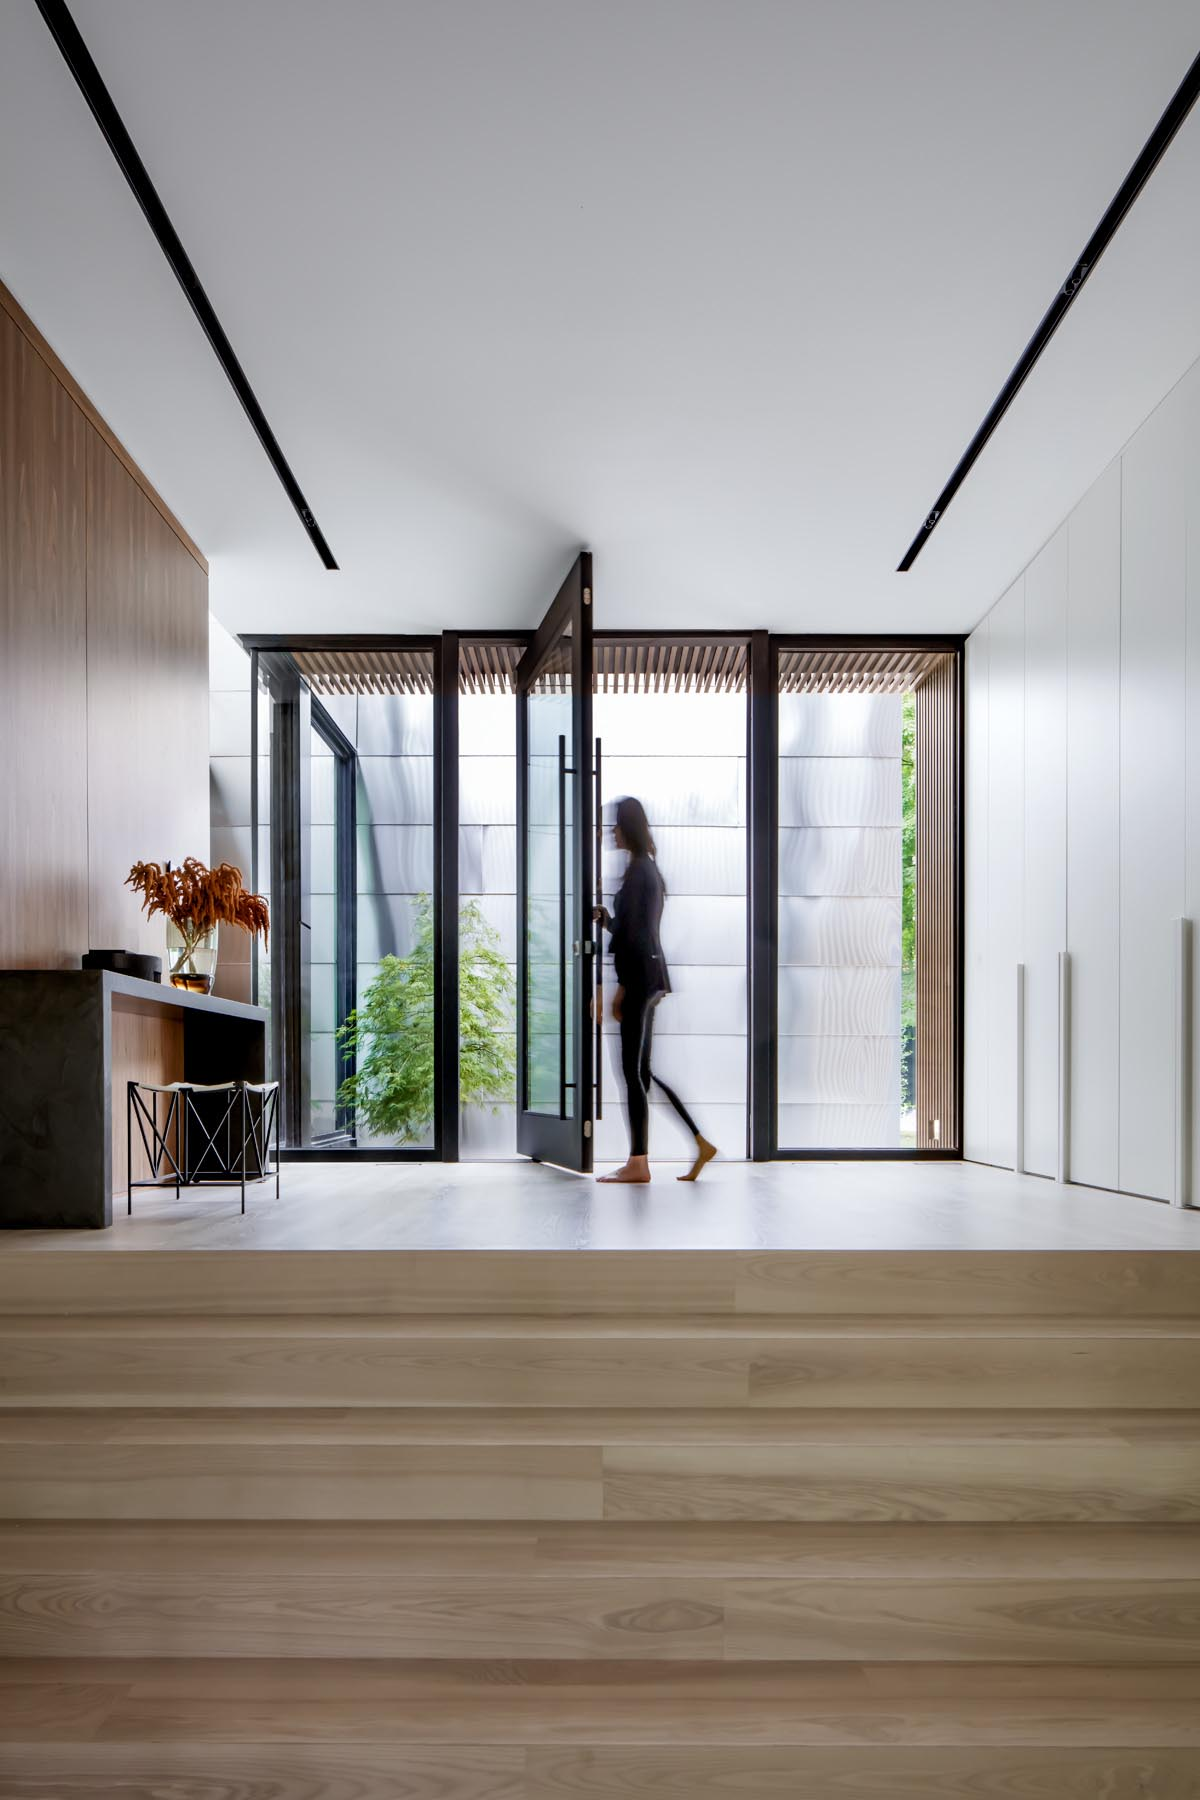 Welcoming visitors to this modern home is a 7-foot wide black-framed glass pivot door, that opens into the entryway furnished with a console table and a stool.